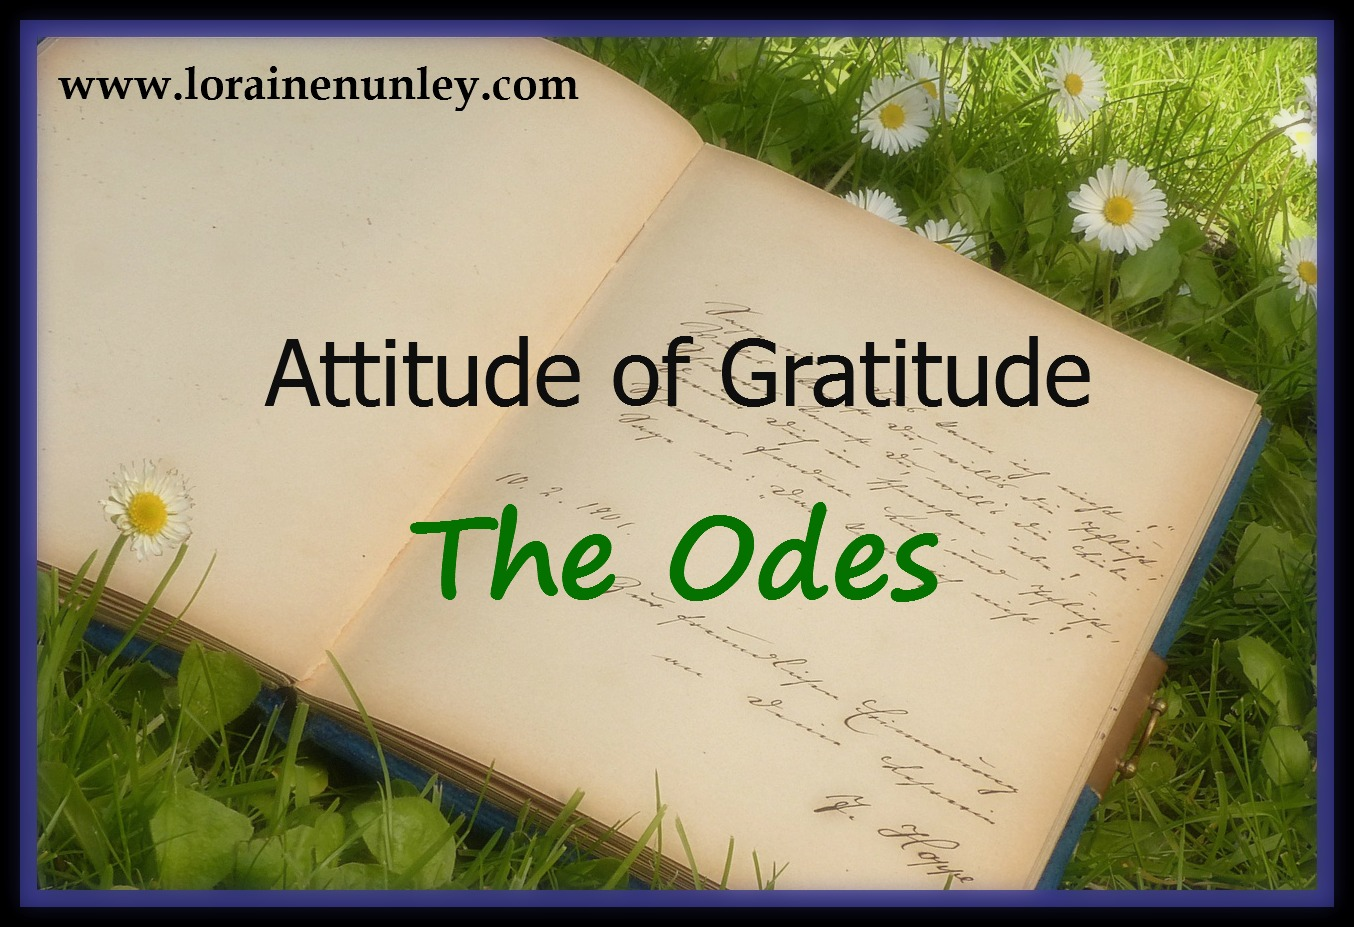 Attitude of Gratitude - The Odes